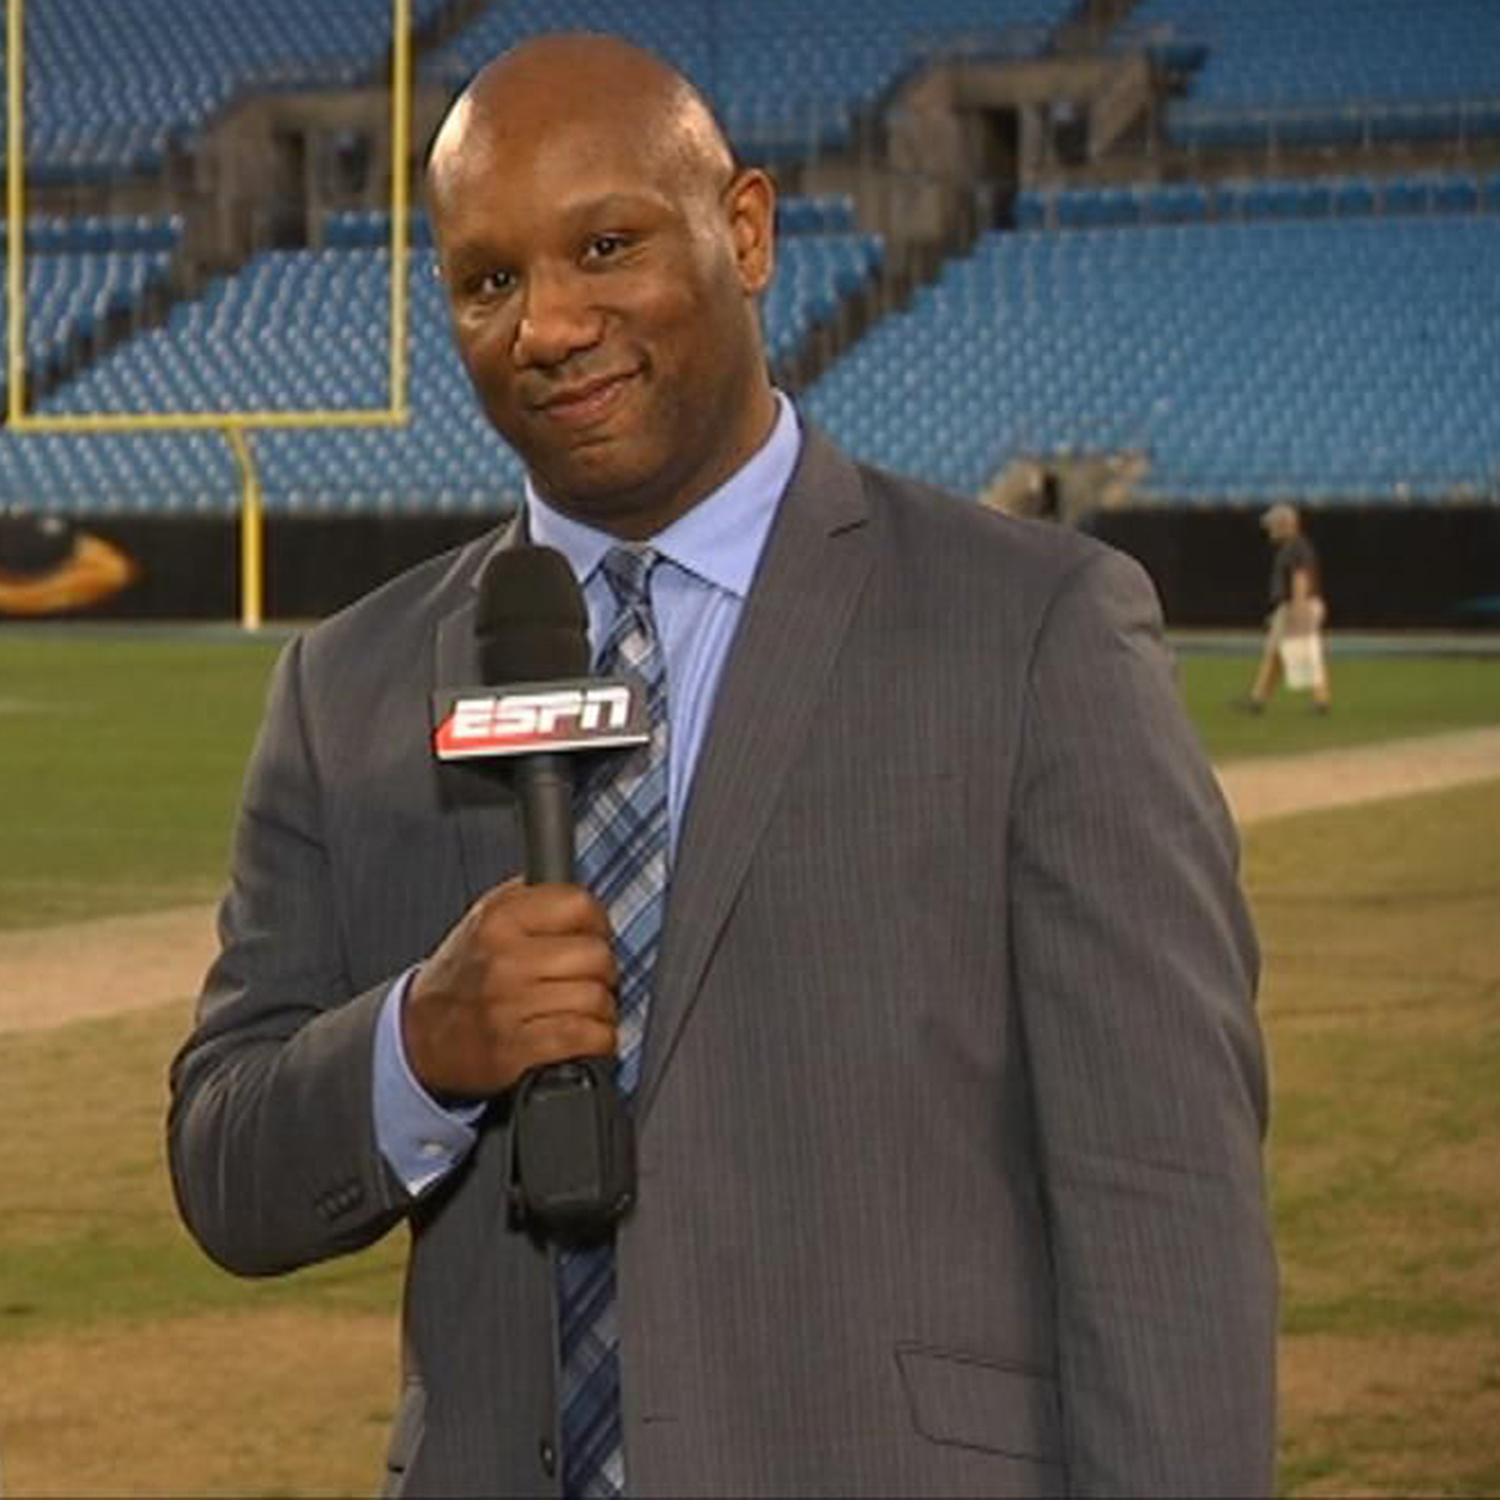 Late ESPN Football Reporter Vaughn McClure Honored at Falcons-Panthers TNF Game